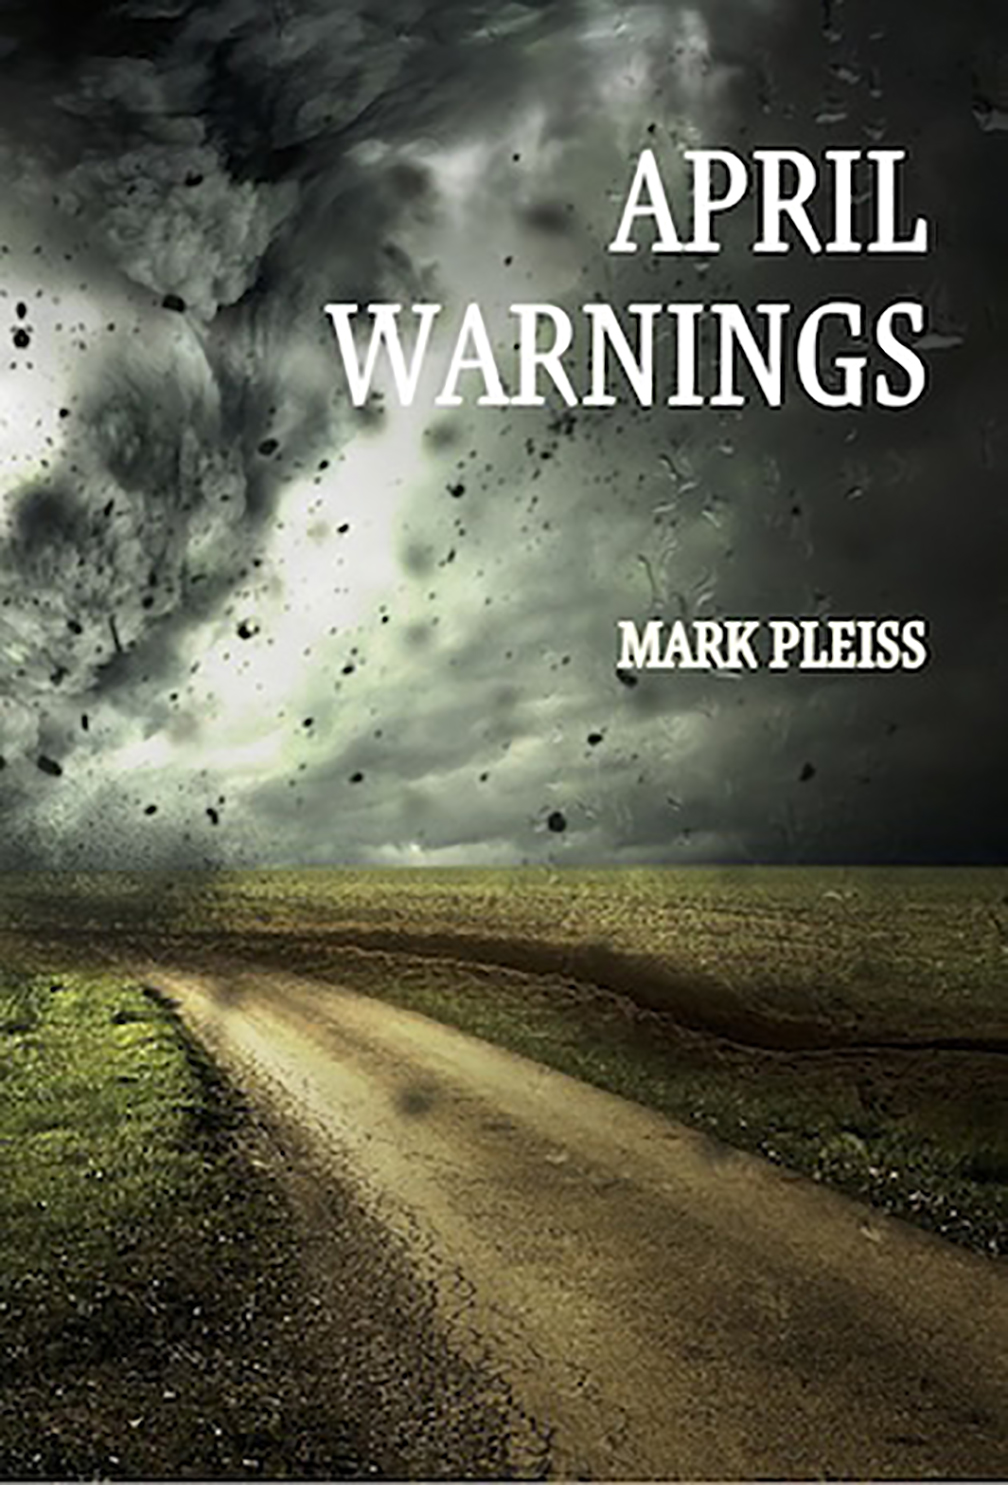 April Warnings